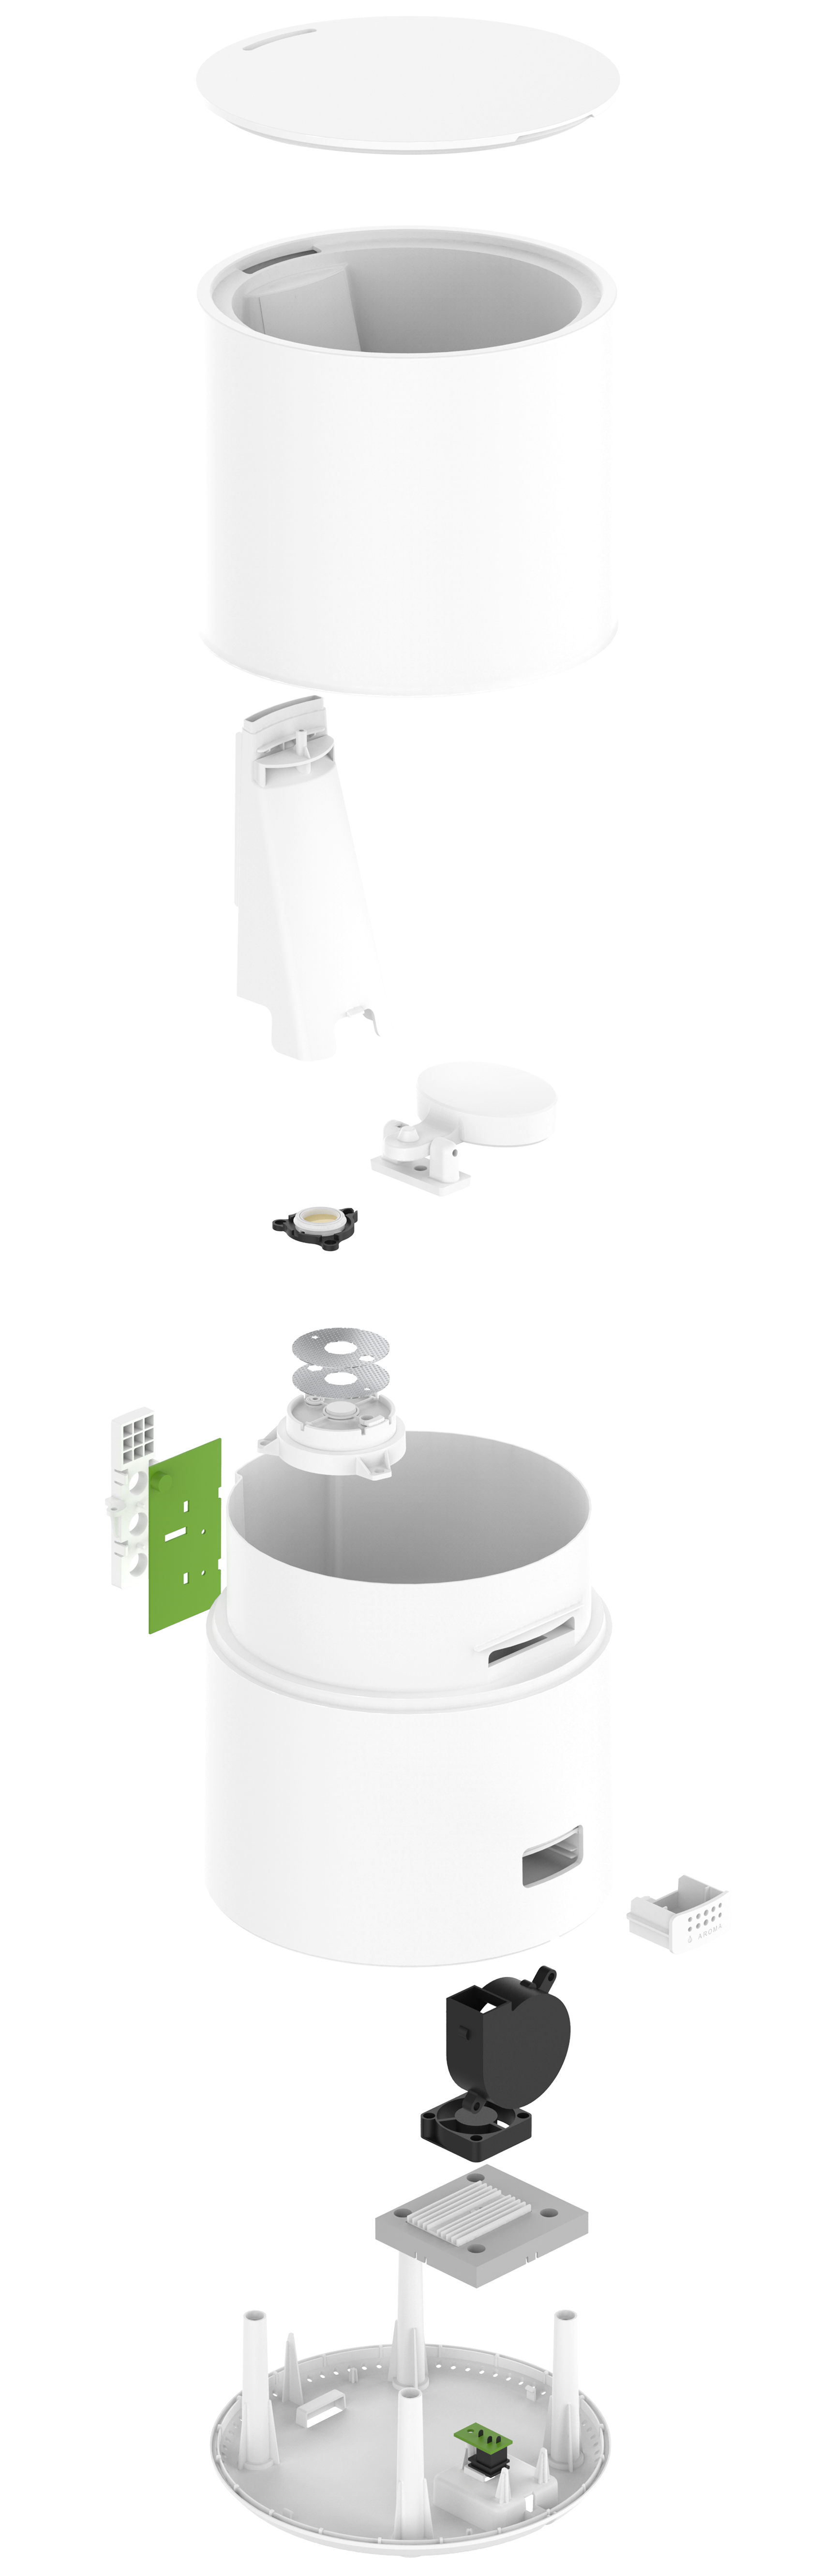 exploded-view-diagram-Quanta-Humidifier-Air-Surface-Sterilization-Humidifier